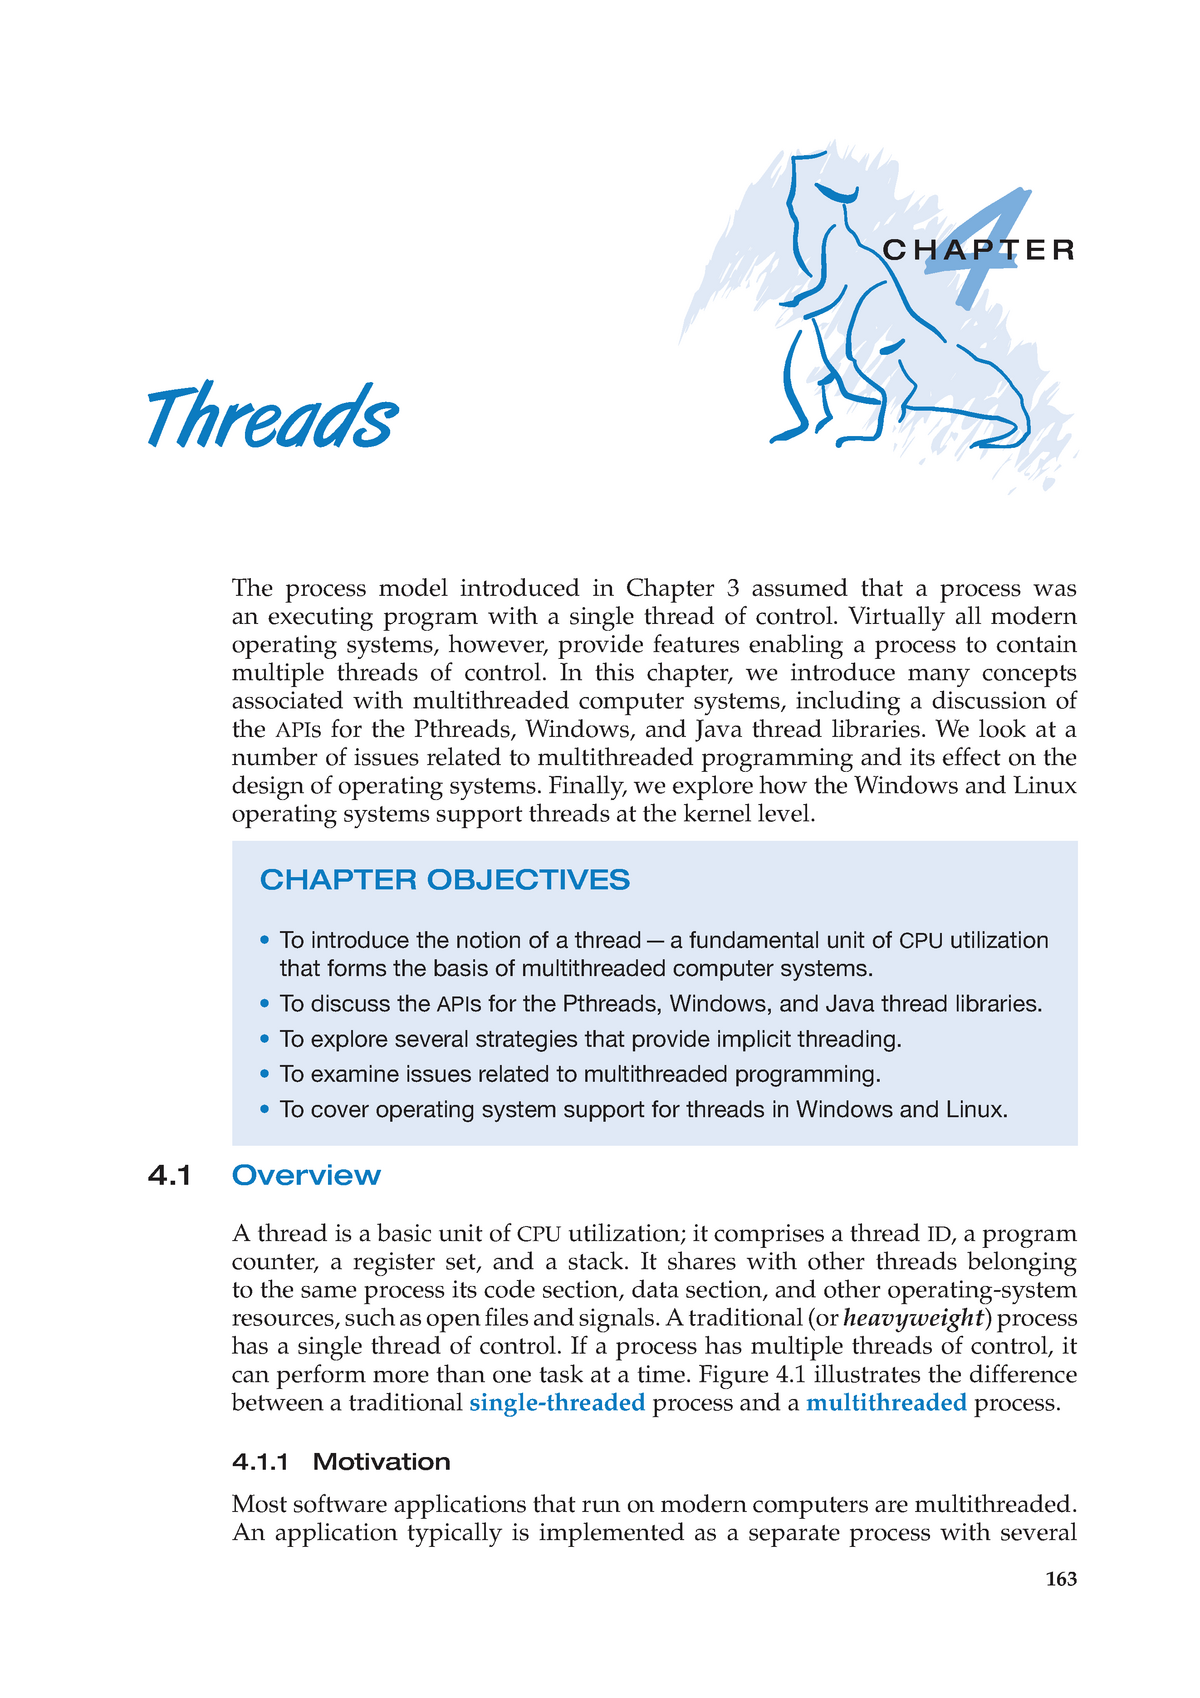 Chapter 04 - Threads - COMP3301: Operating Systems